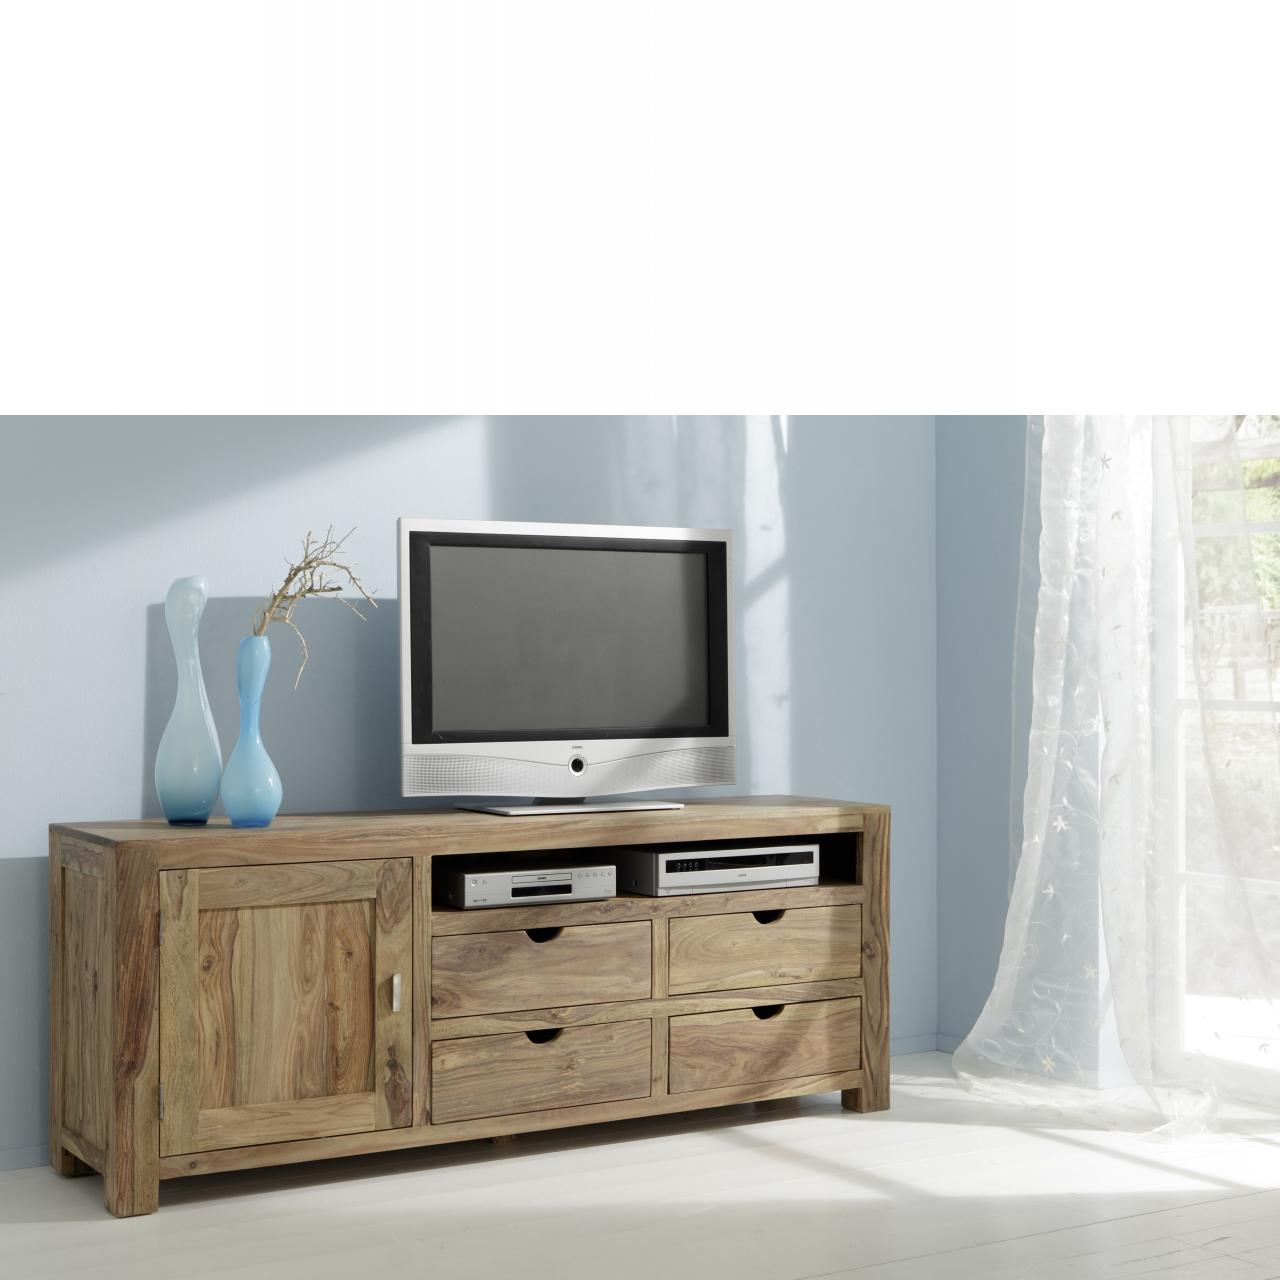 tv lowboard yoga 6404 beim bel wohnen m bel j hnichen center gmbh. Black Bedroom Furniture Sets. Home Design Ideas